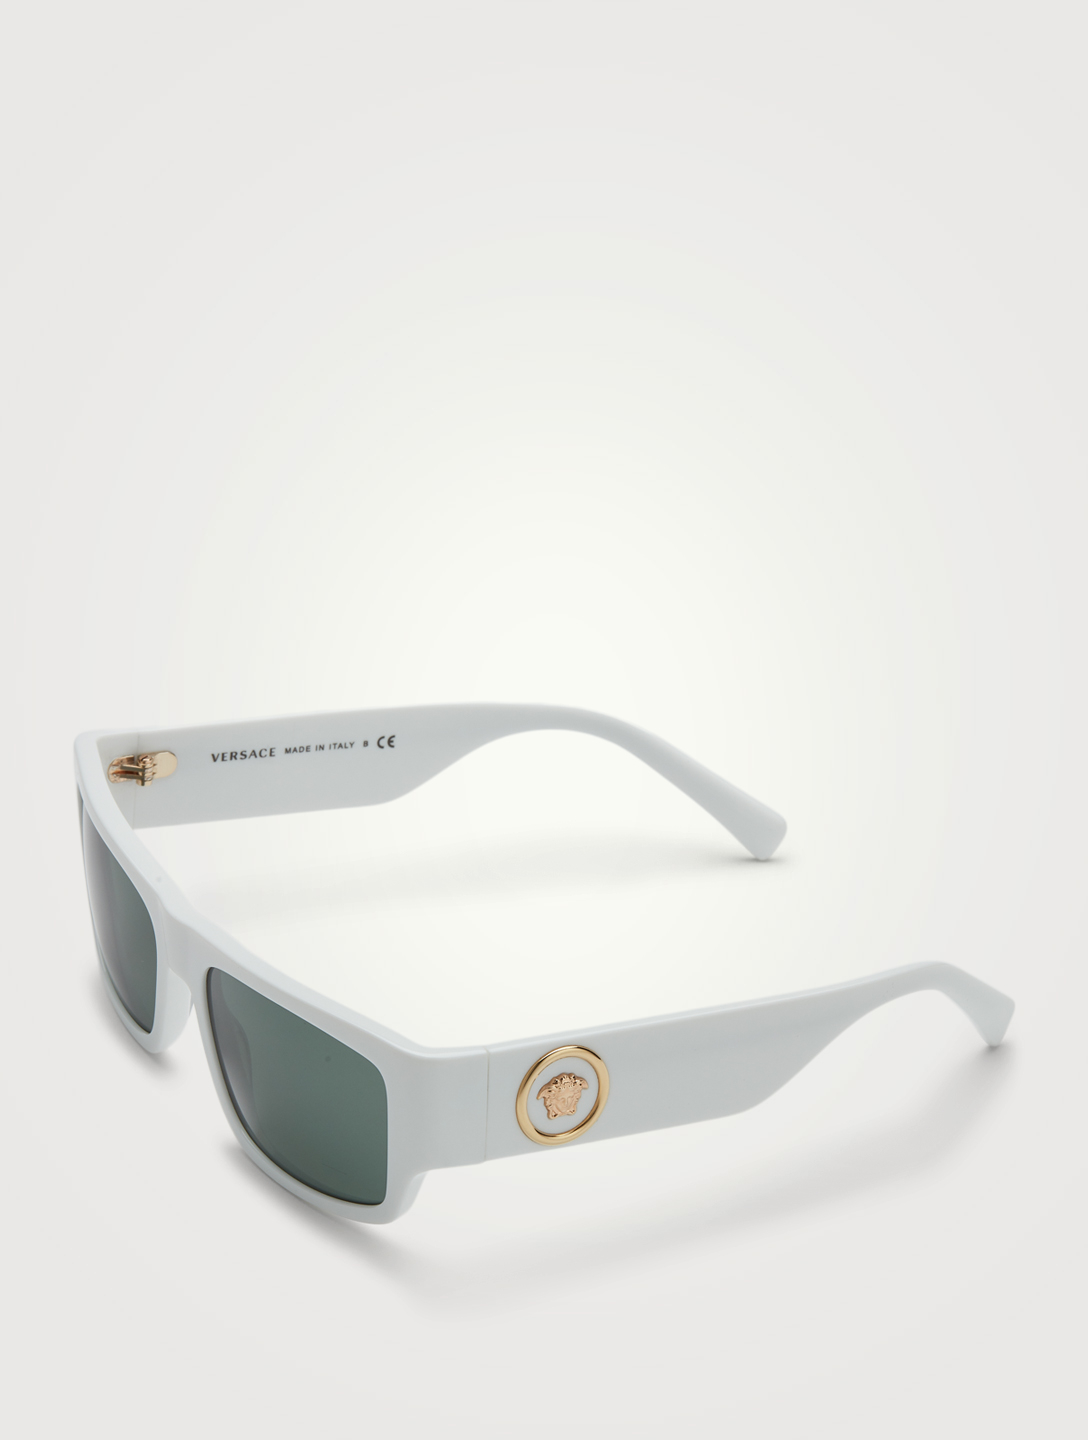 VERSACE Rectangular Sunglasses Men's White